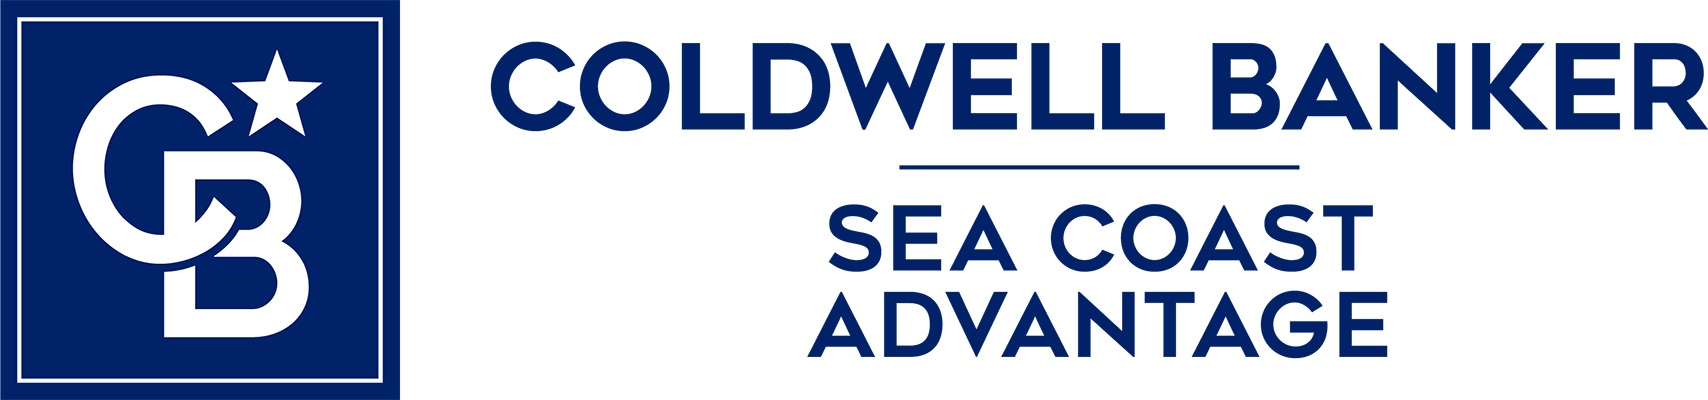 Linda Killian - Coldwell Banker Sea Coast Advantage Realty